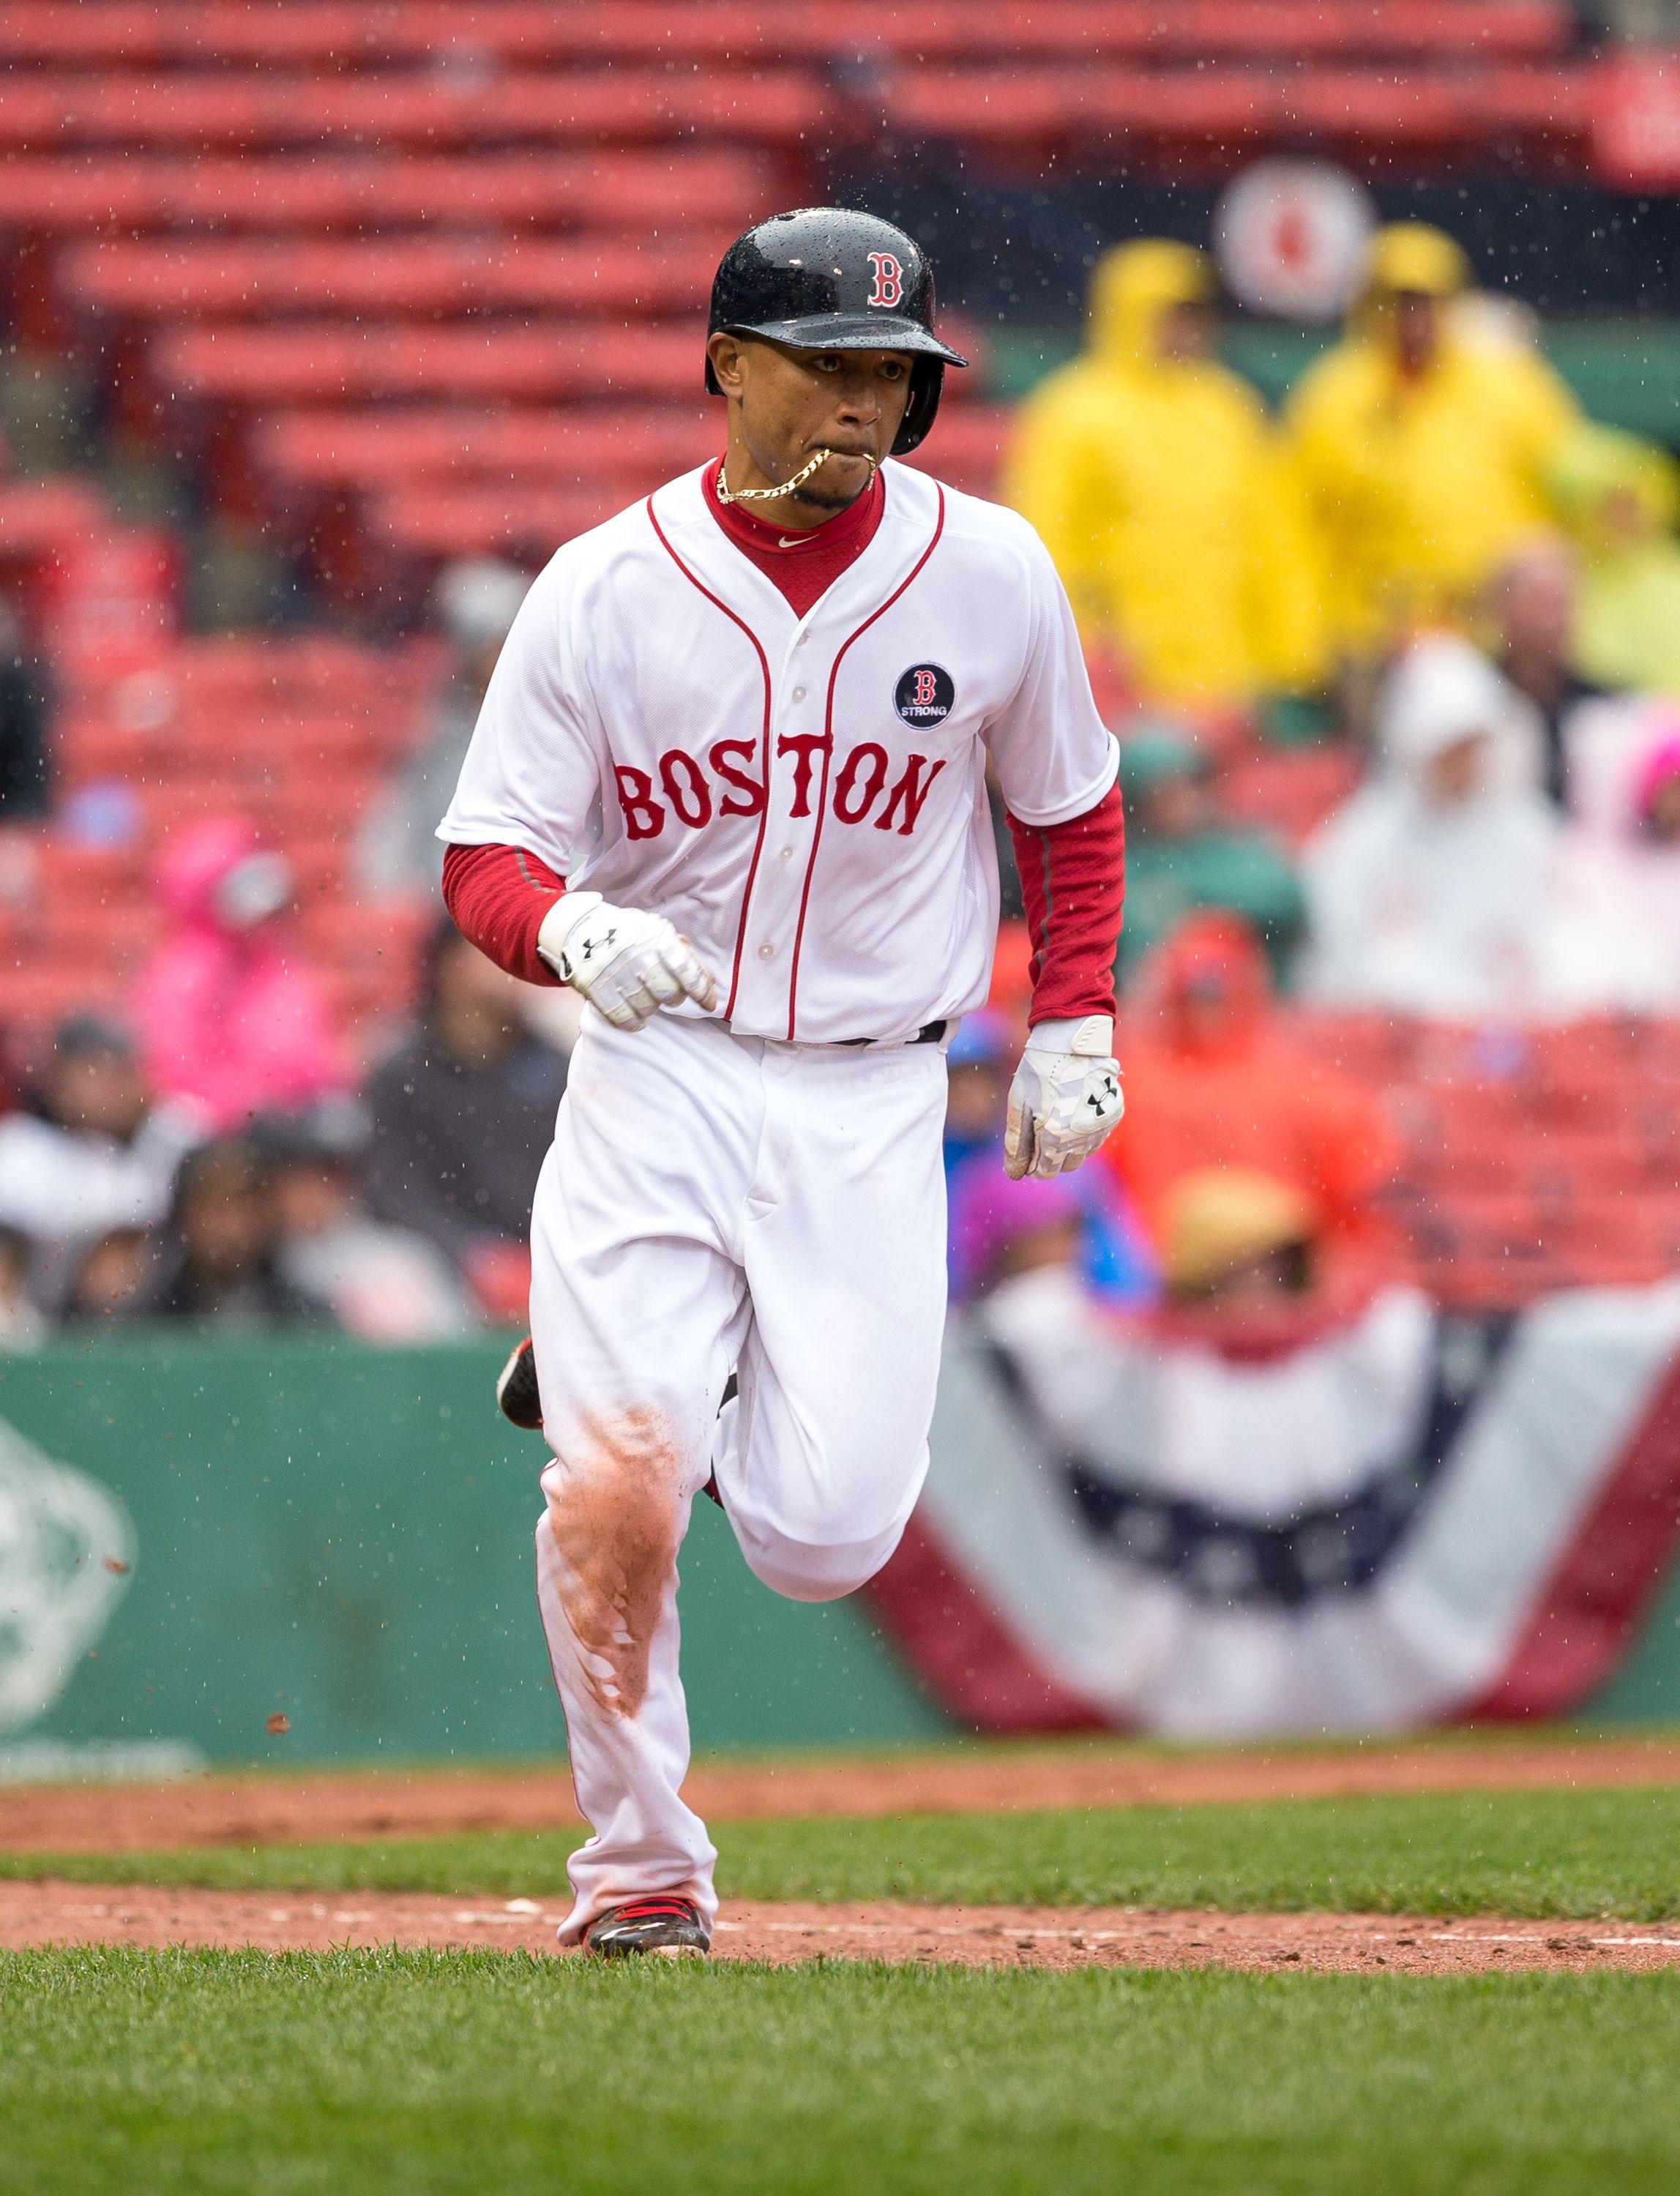 The rise of Mookie Betts